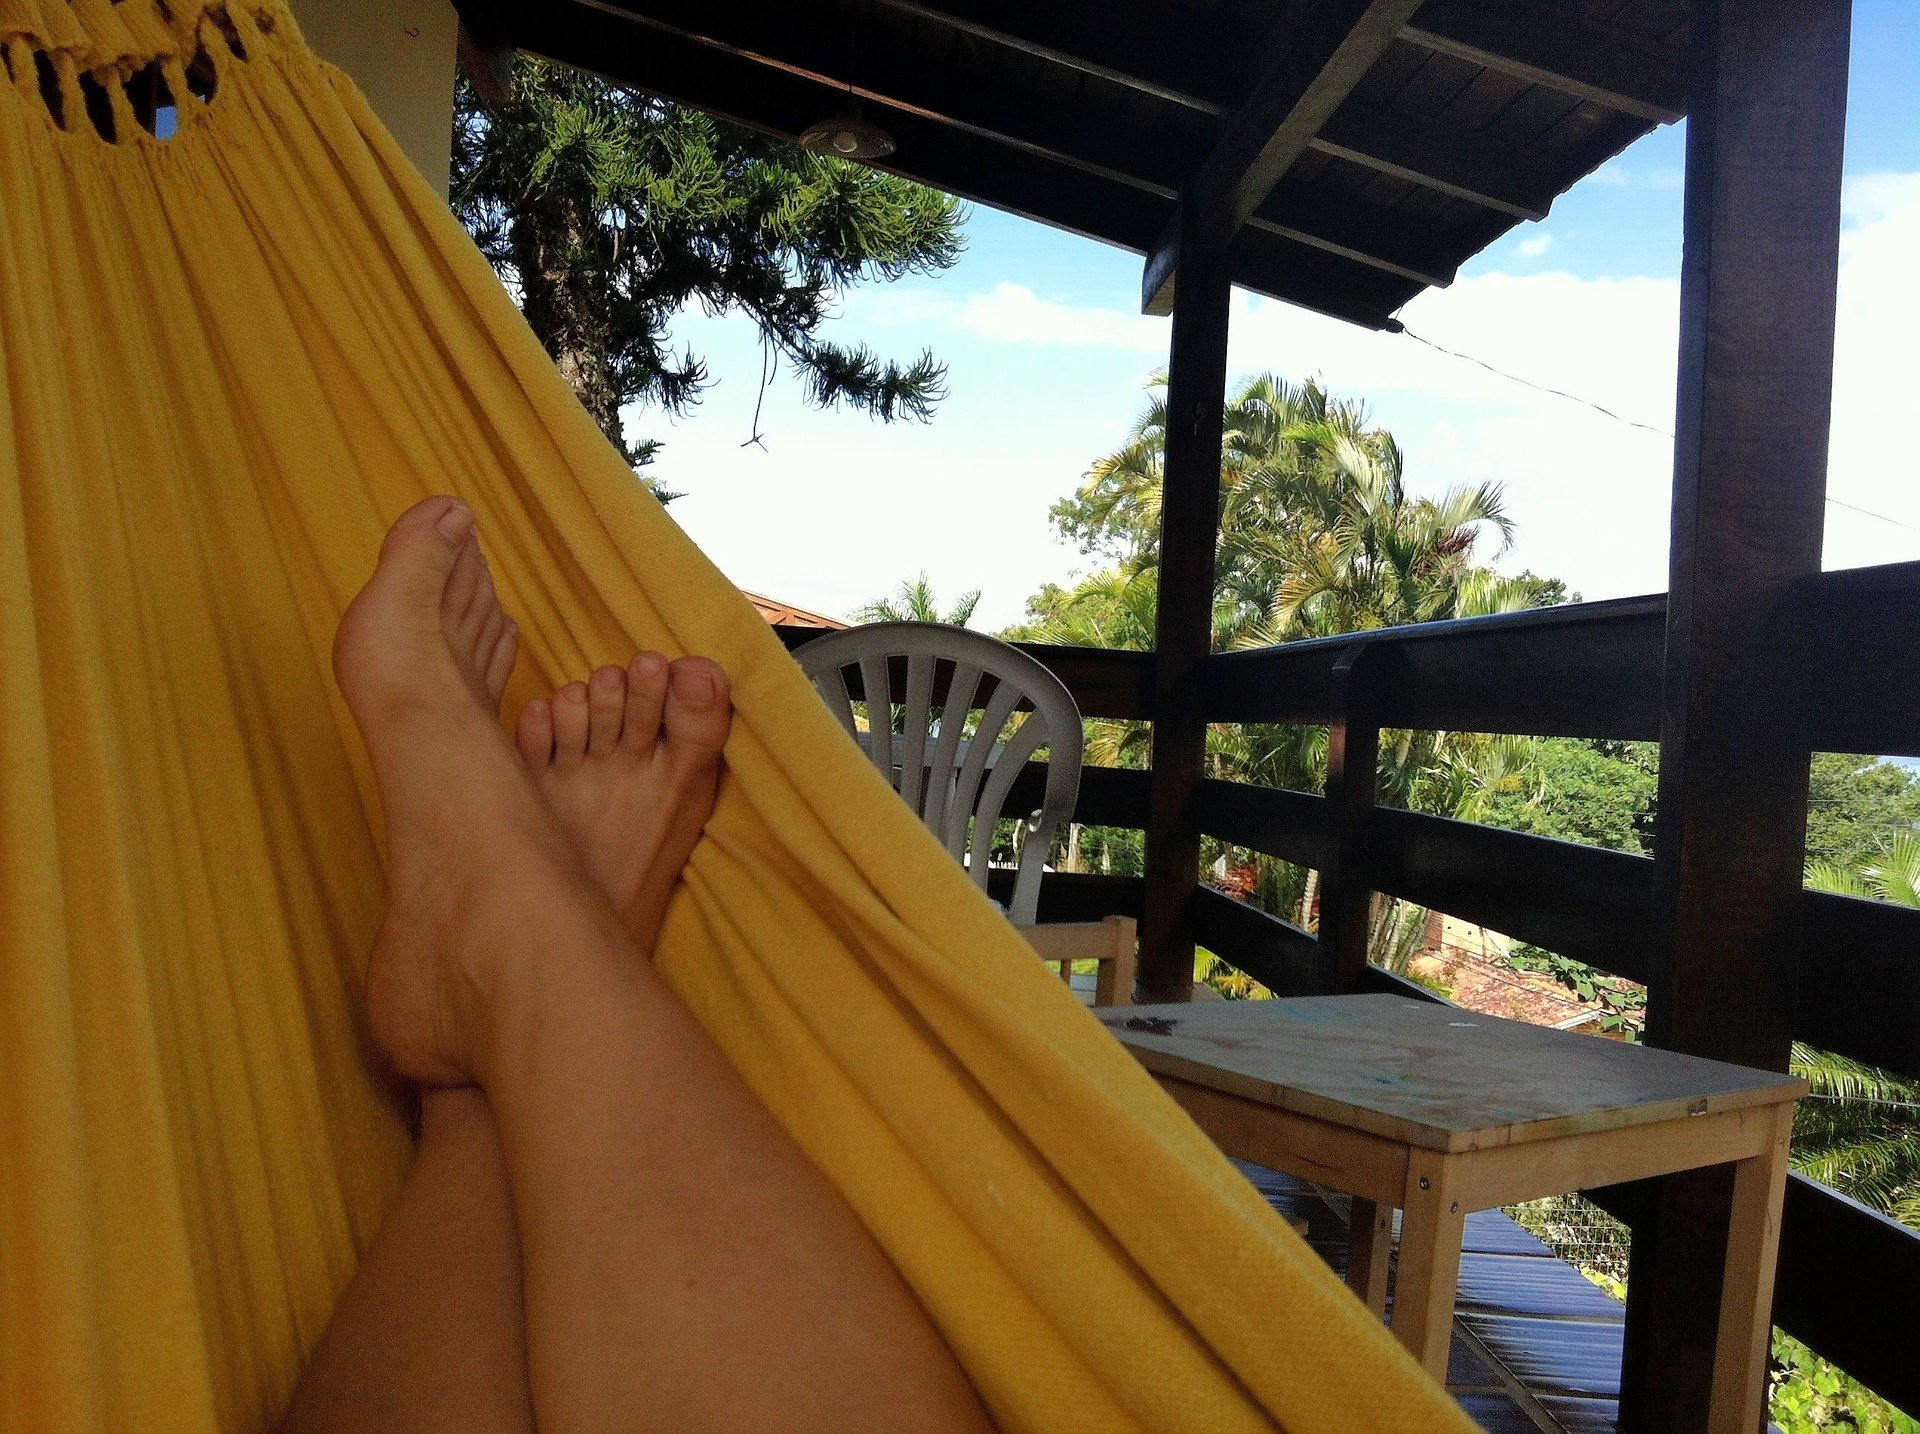 Hammock Hanging on Porch